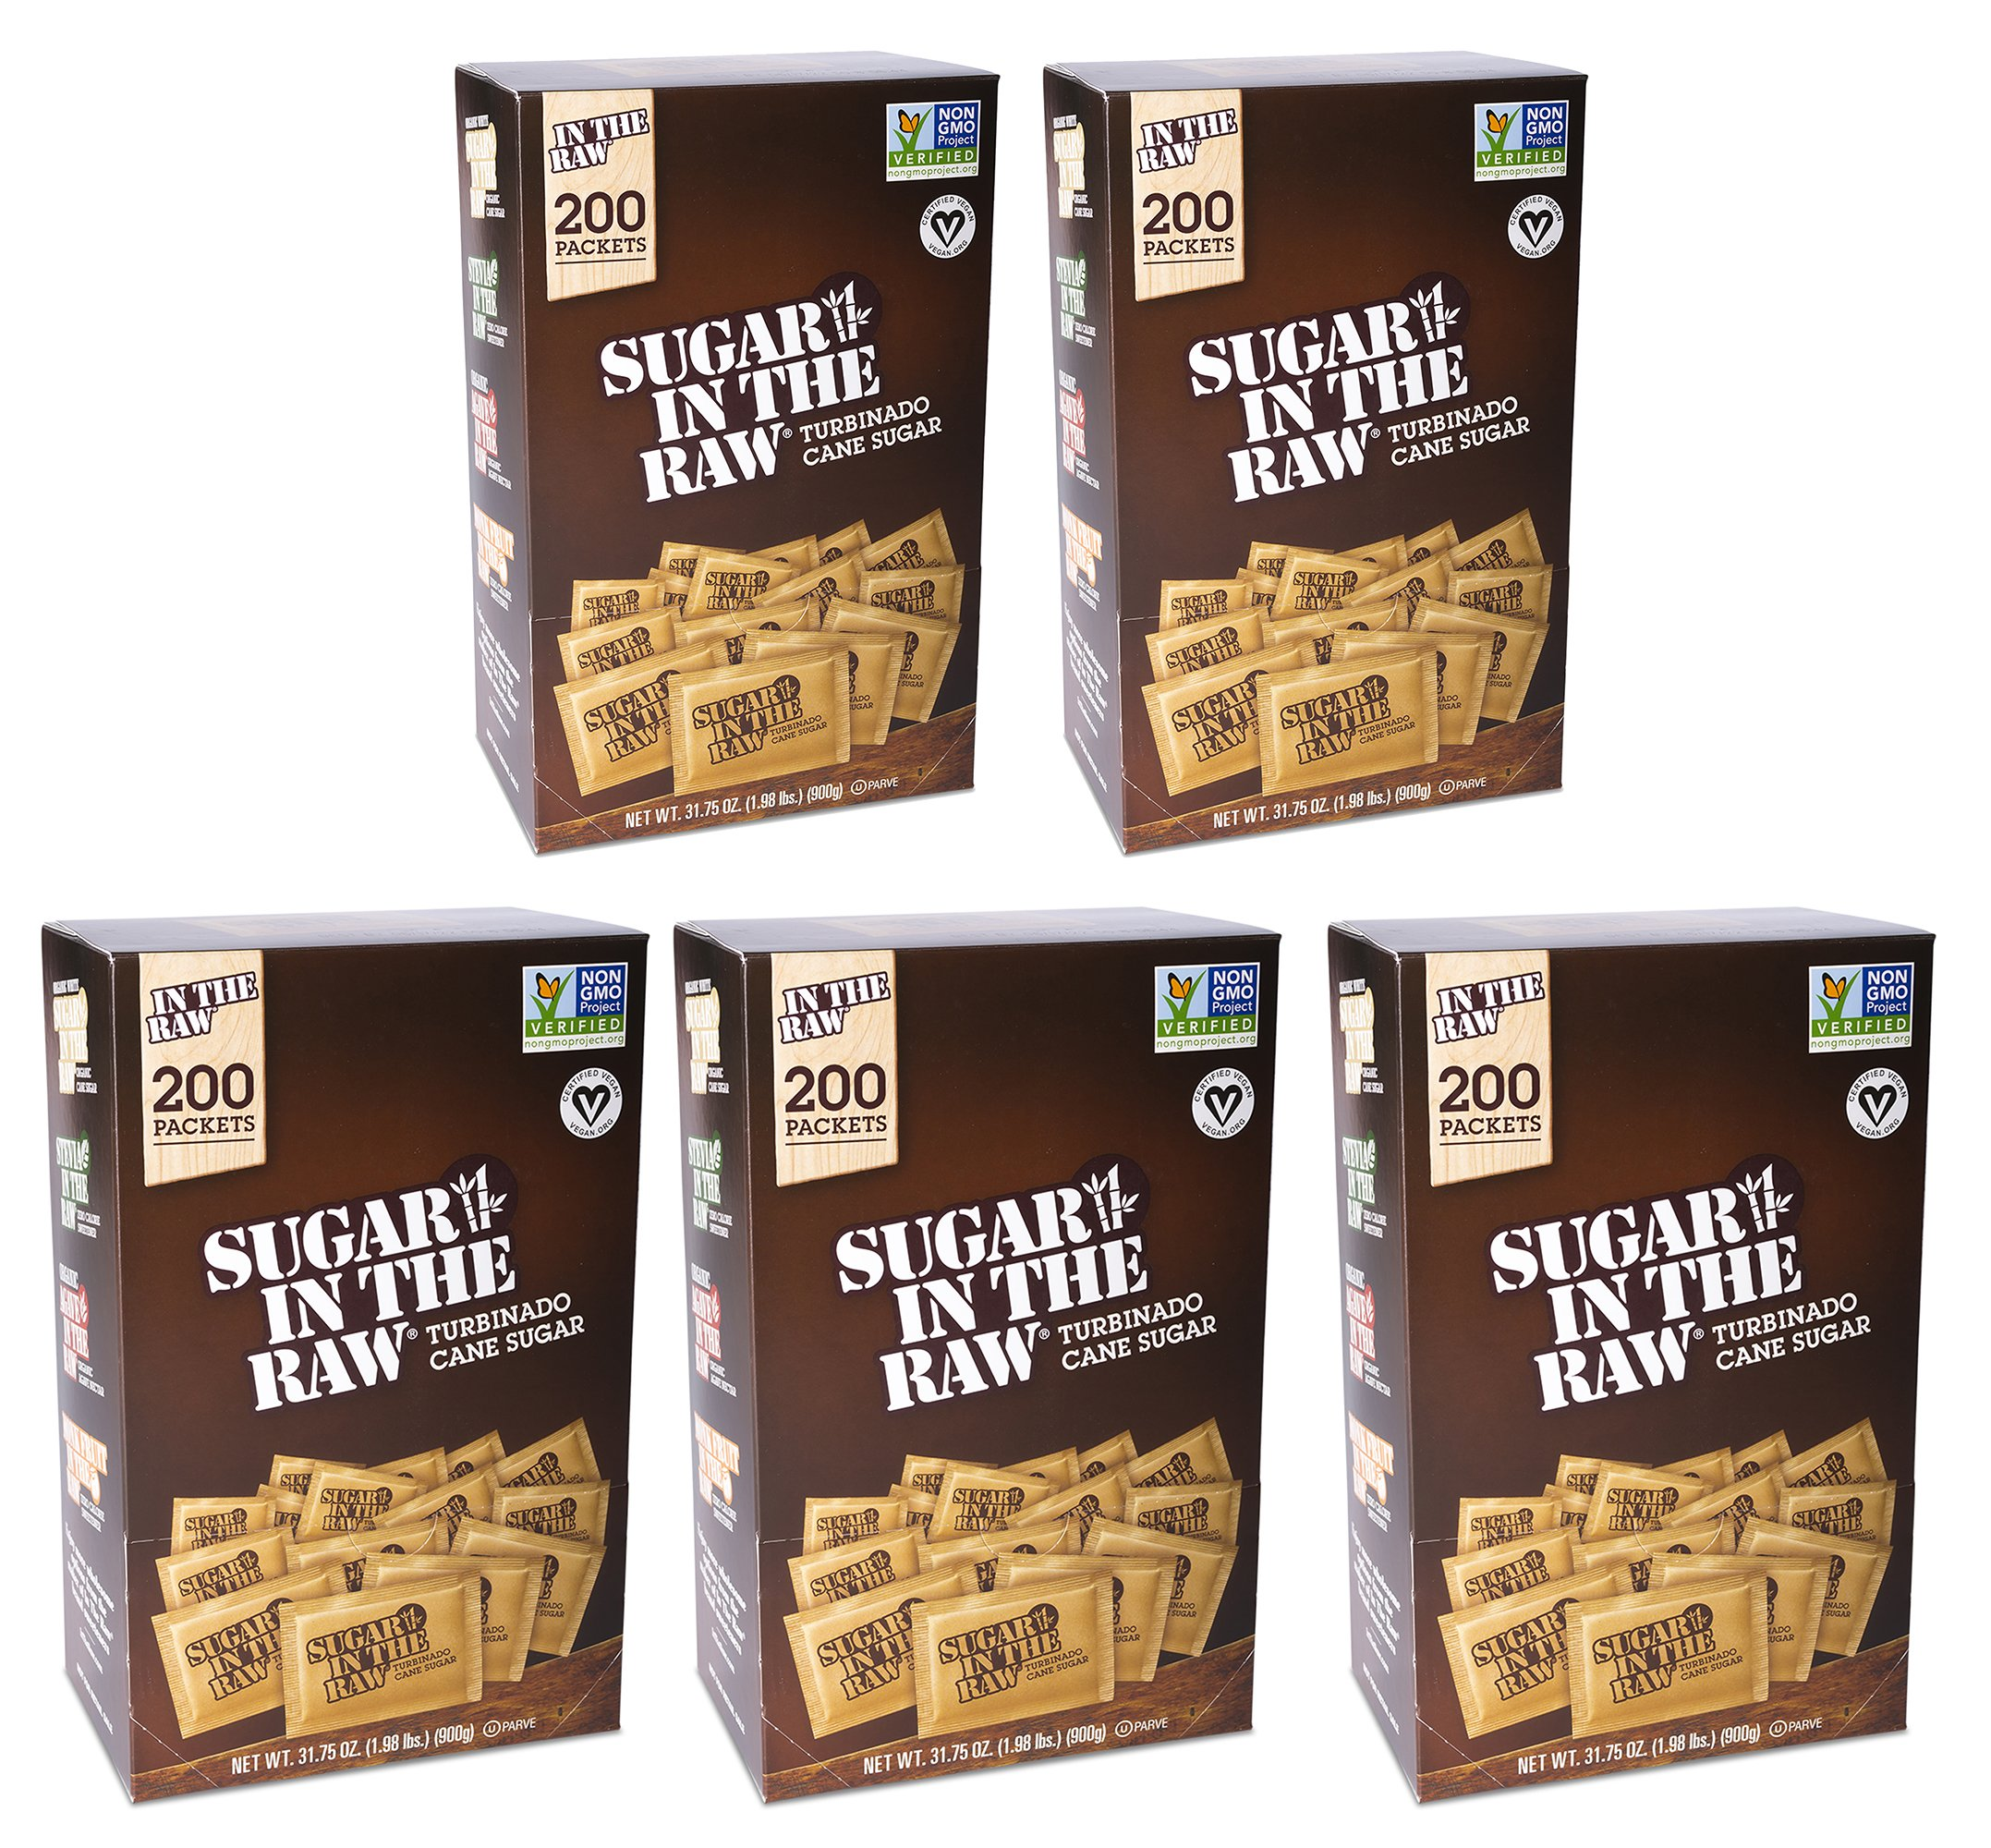 5-Pack Sugar In The Raw Turbinado Cane Sugar, Pack Contains 1000-4.5g packets (5 Pack)